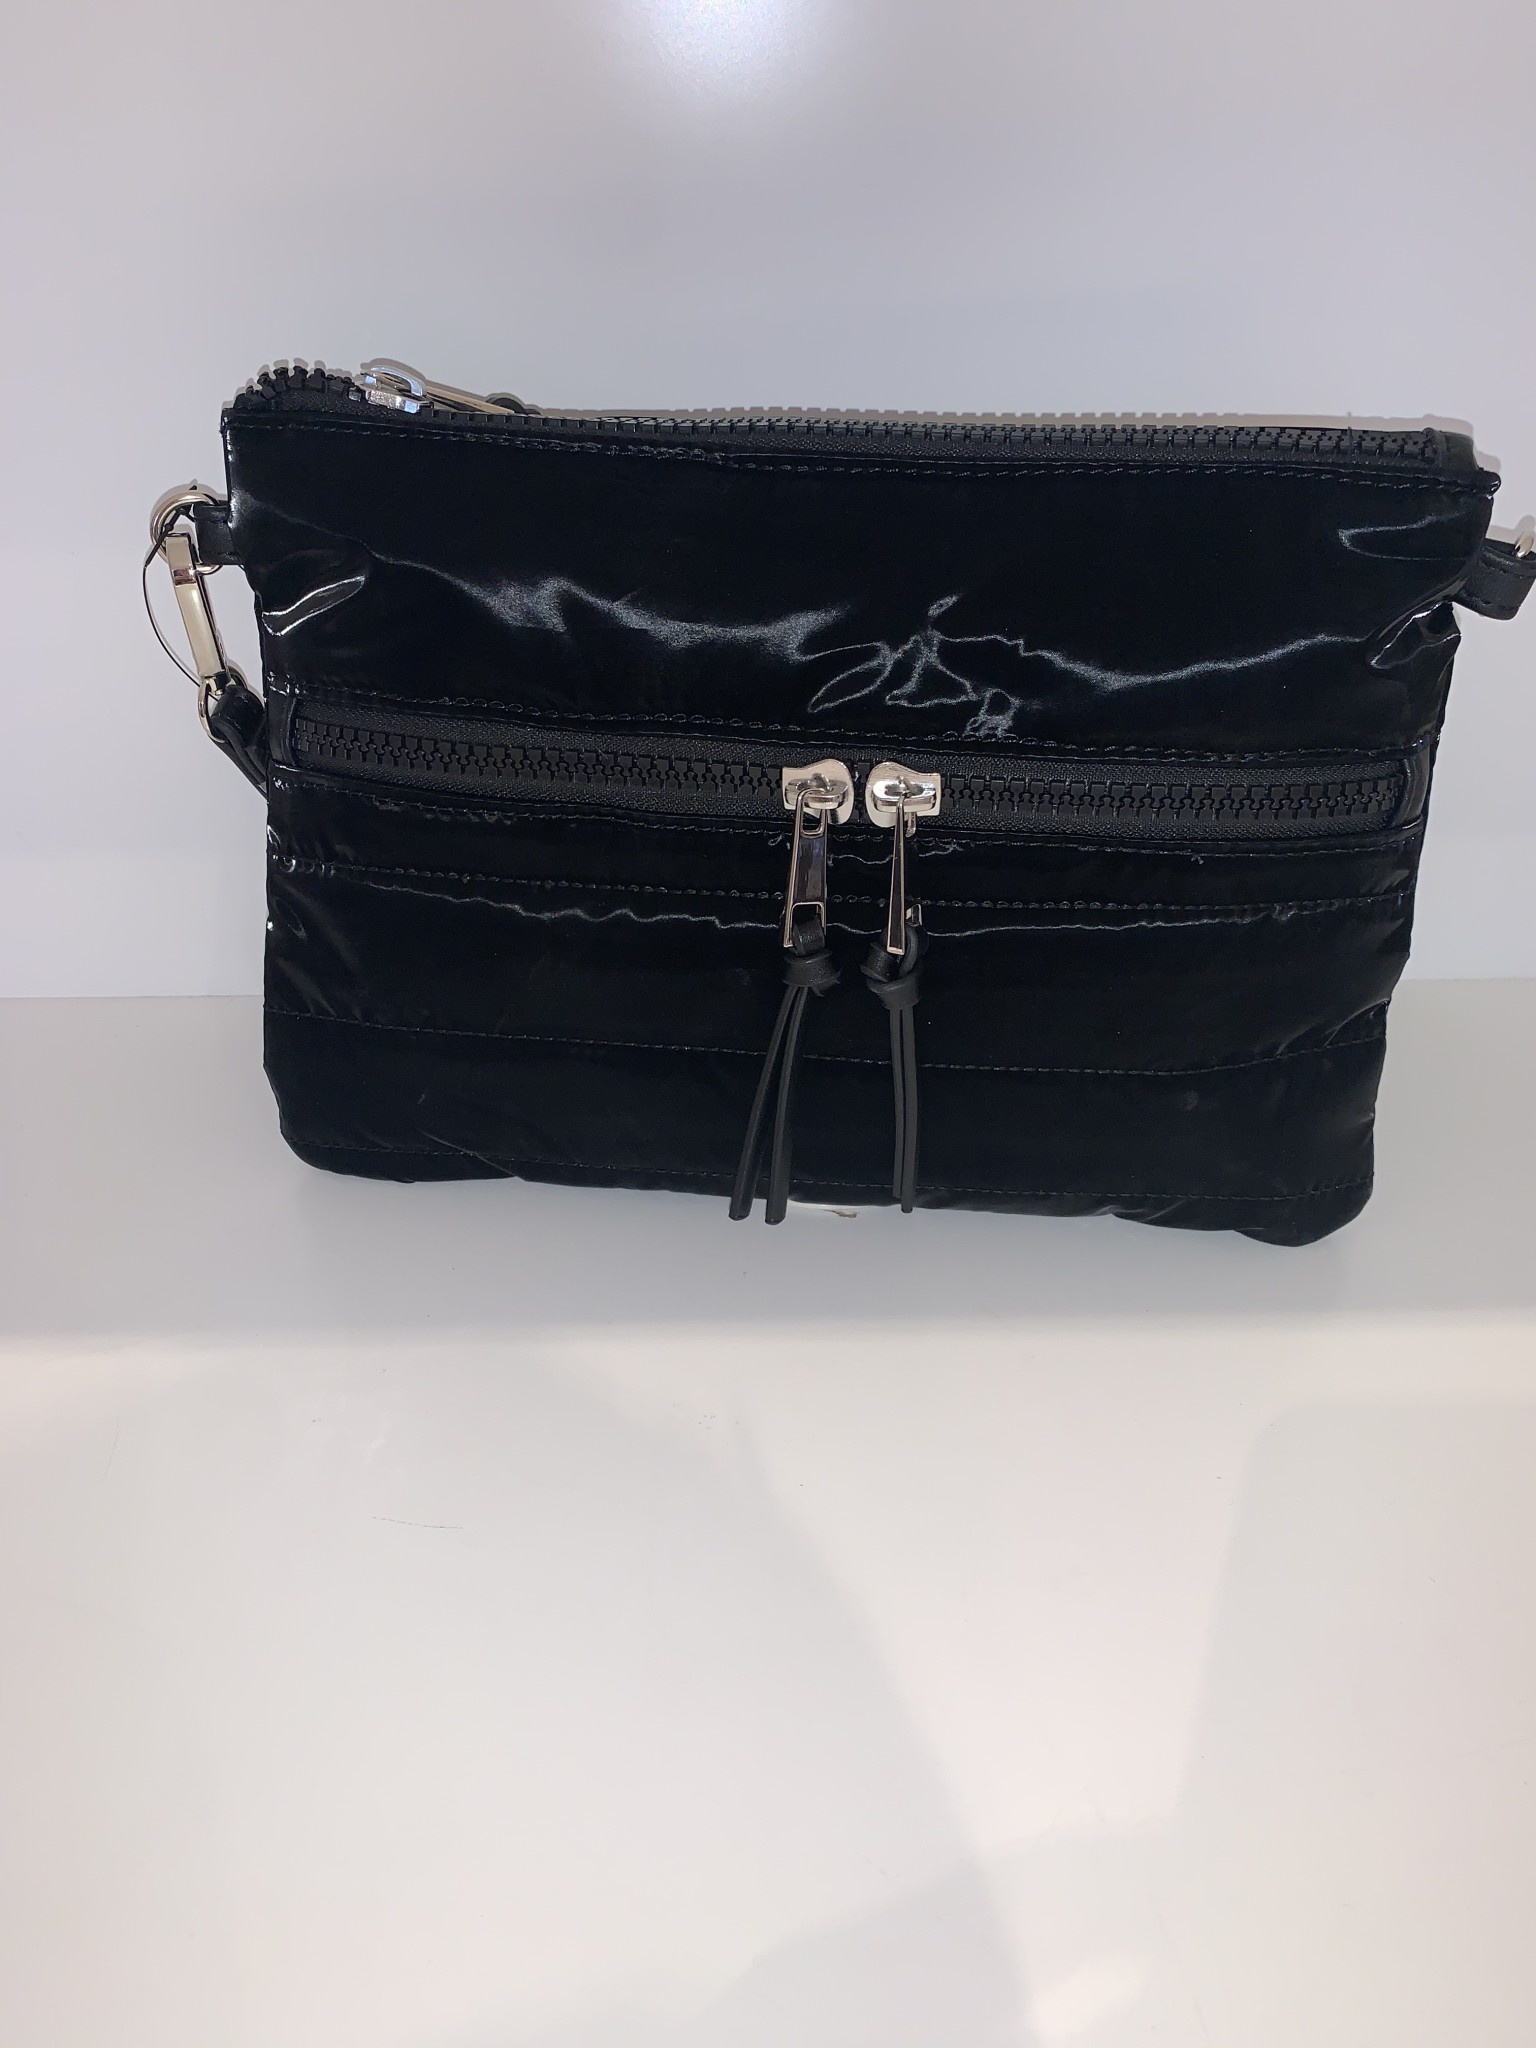 Nylon Cross Body Bag- EAST WEST ( Landscape)